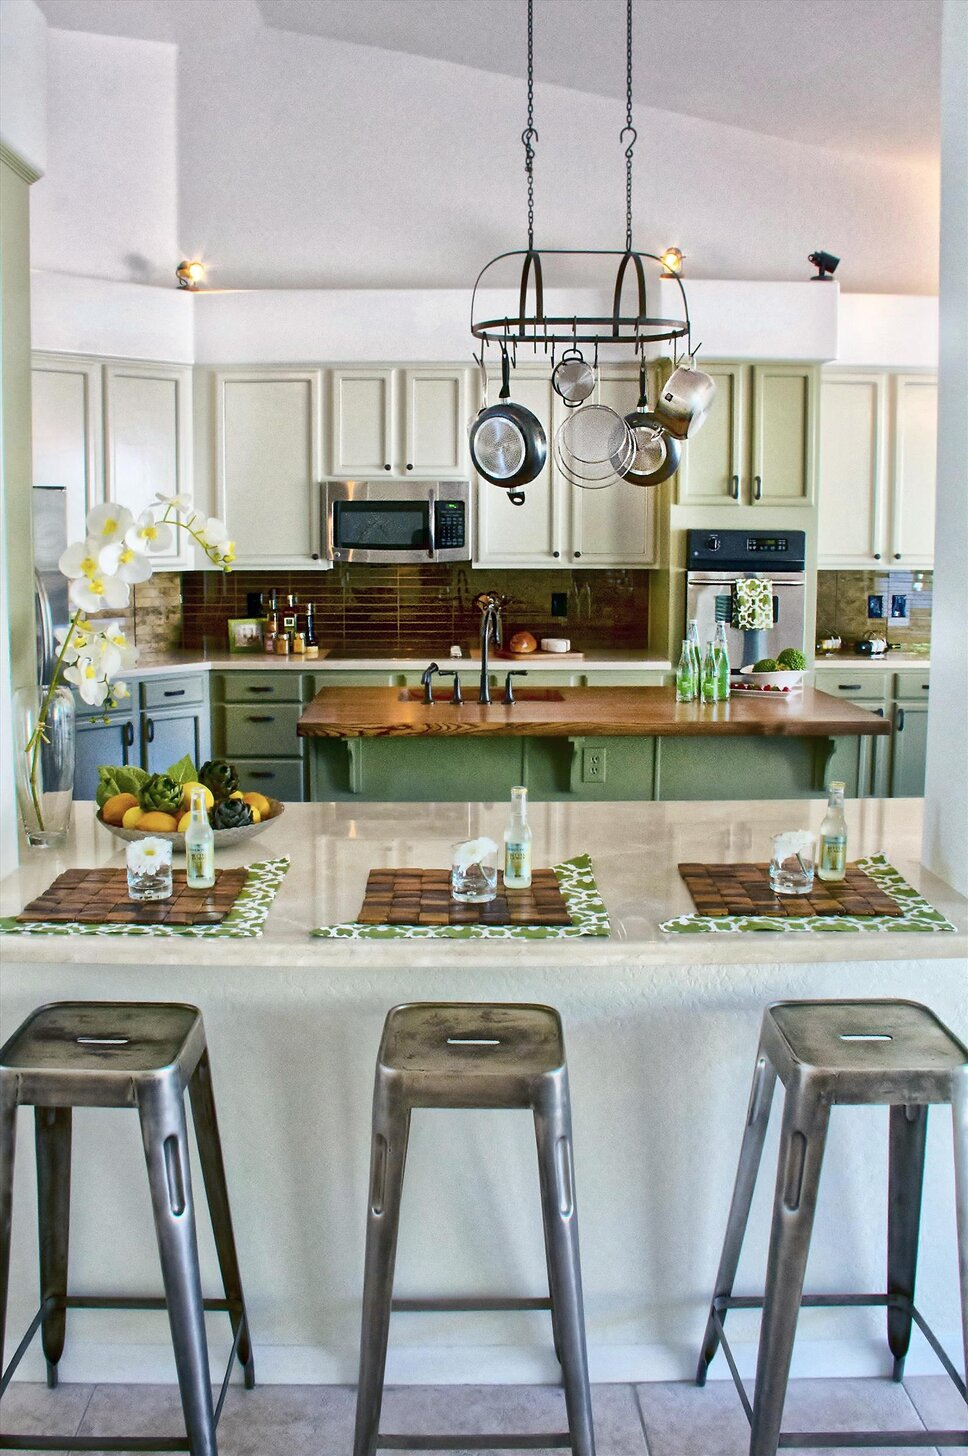 Southwest two-tone cabinetry with contrasting bronze-gold leaf backsplash.  Marble counter tops with wood counter top over island.  Stainless appliances, Oil Rubbed Bronze Fixtures. Cottage/Country Kitchen design